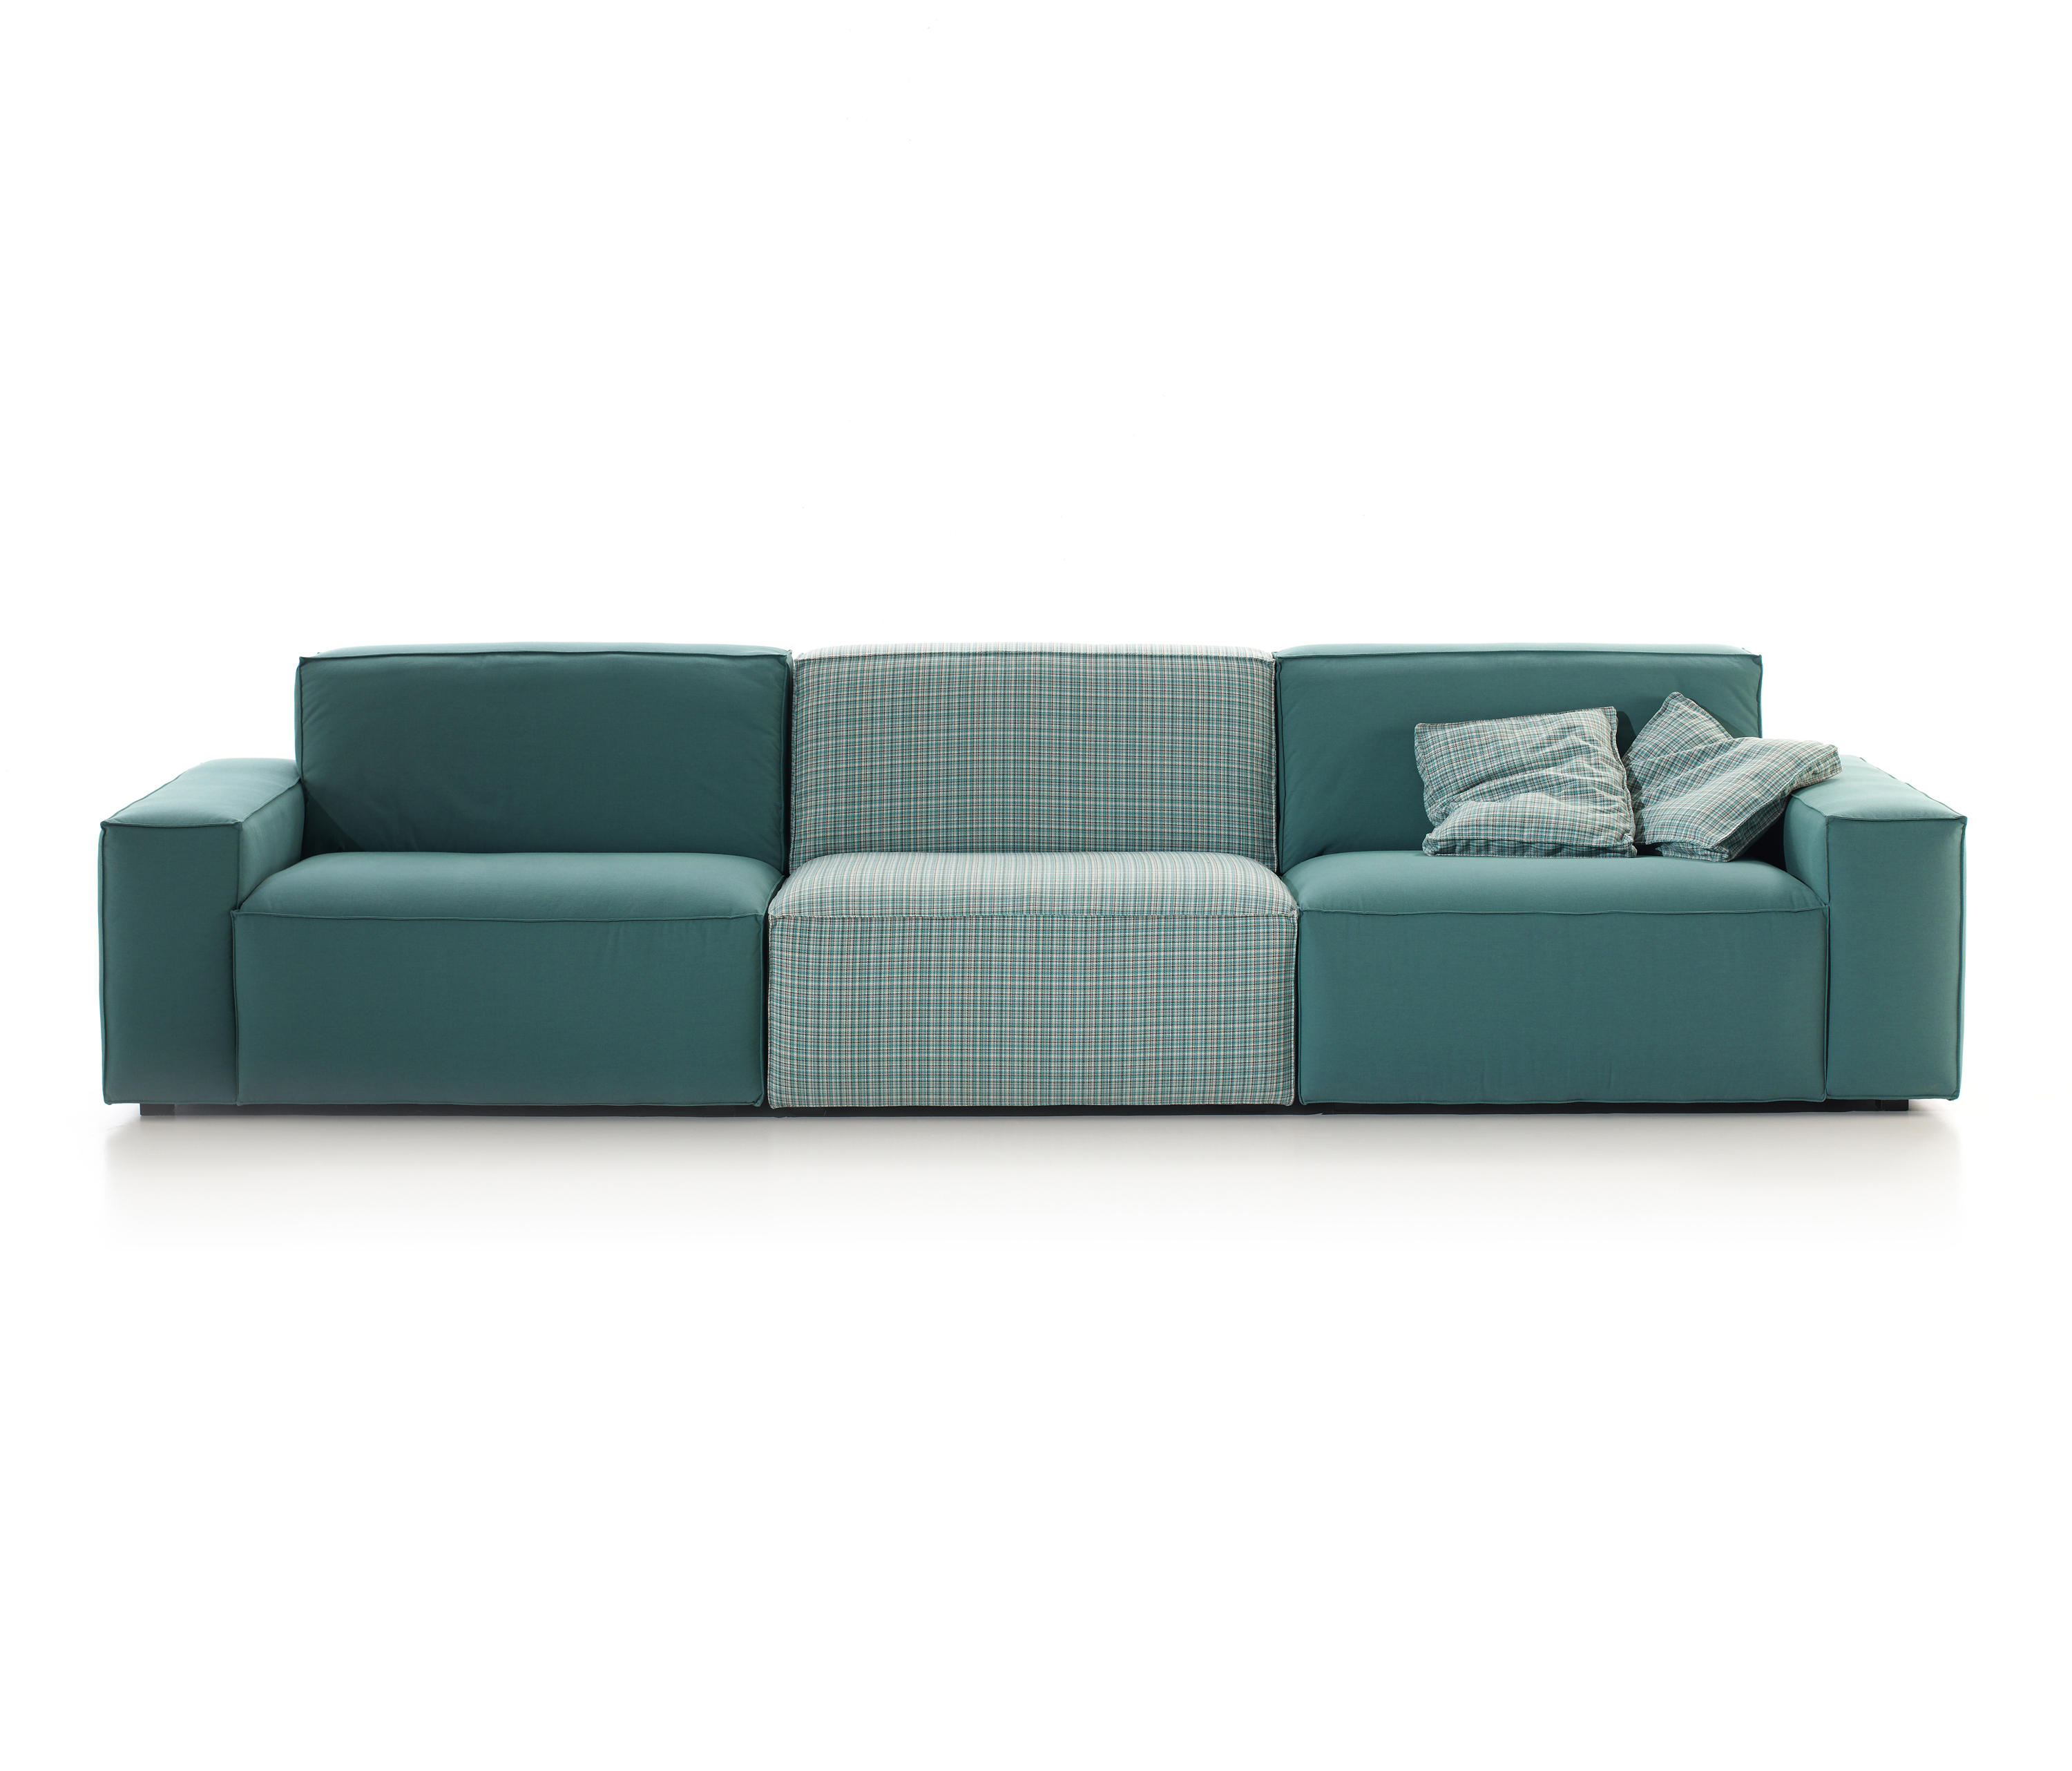 Cool lounge sofas from belta frajumar architonic - Belta frajumar projects sl ...